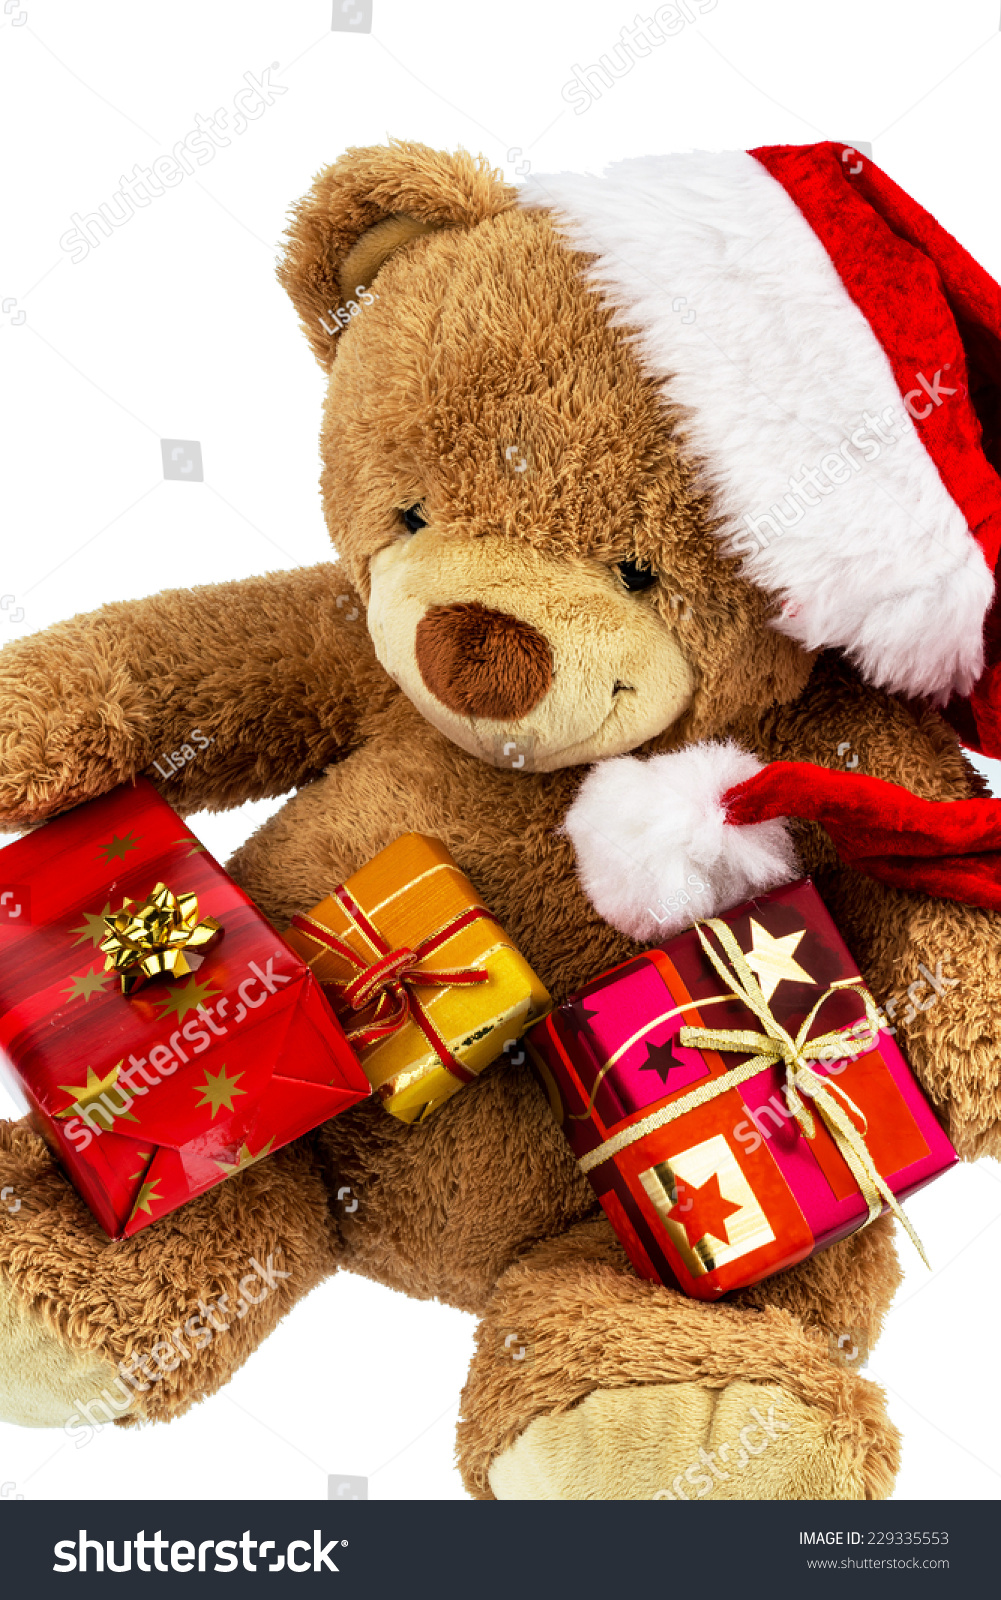 A teddy bear with gifts for christmas dressed as santa